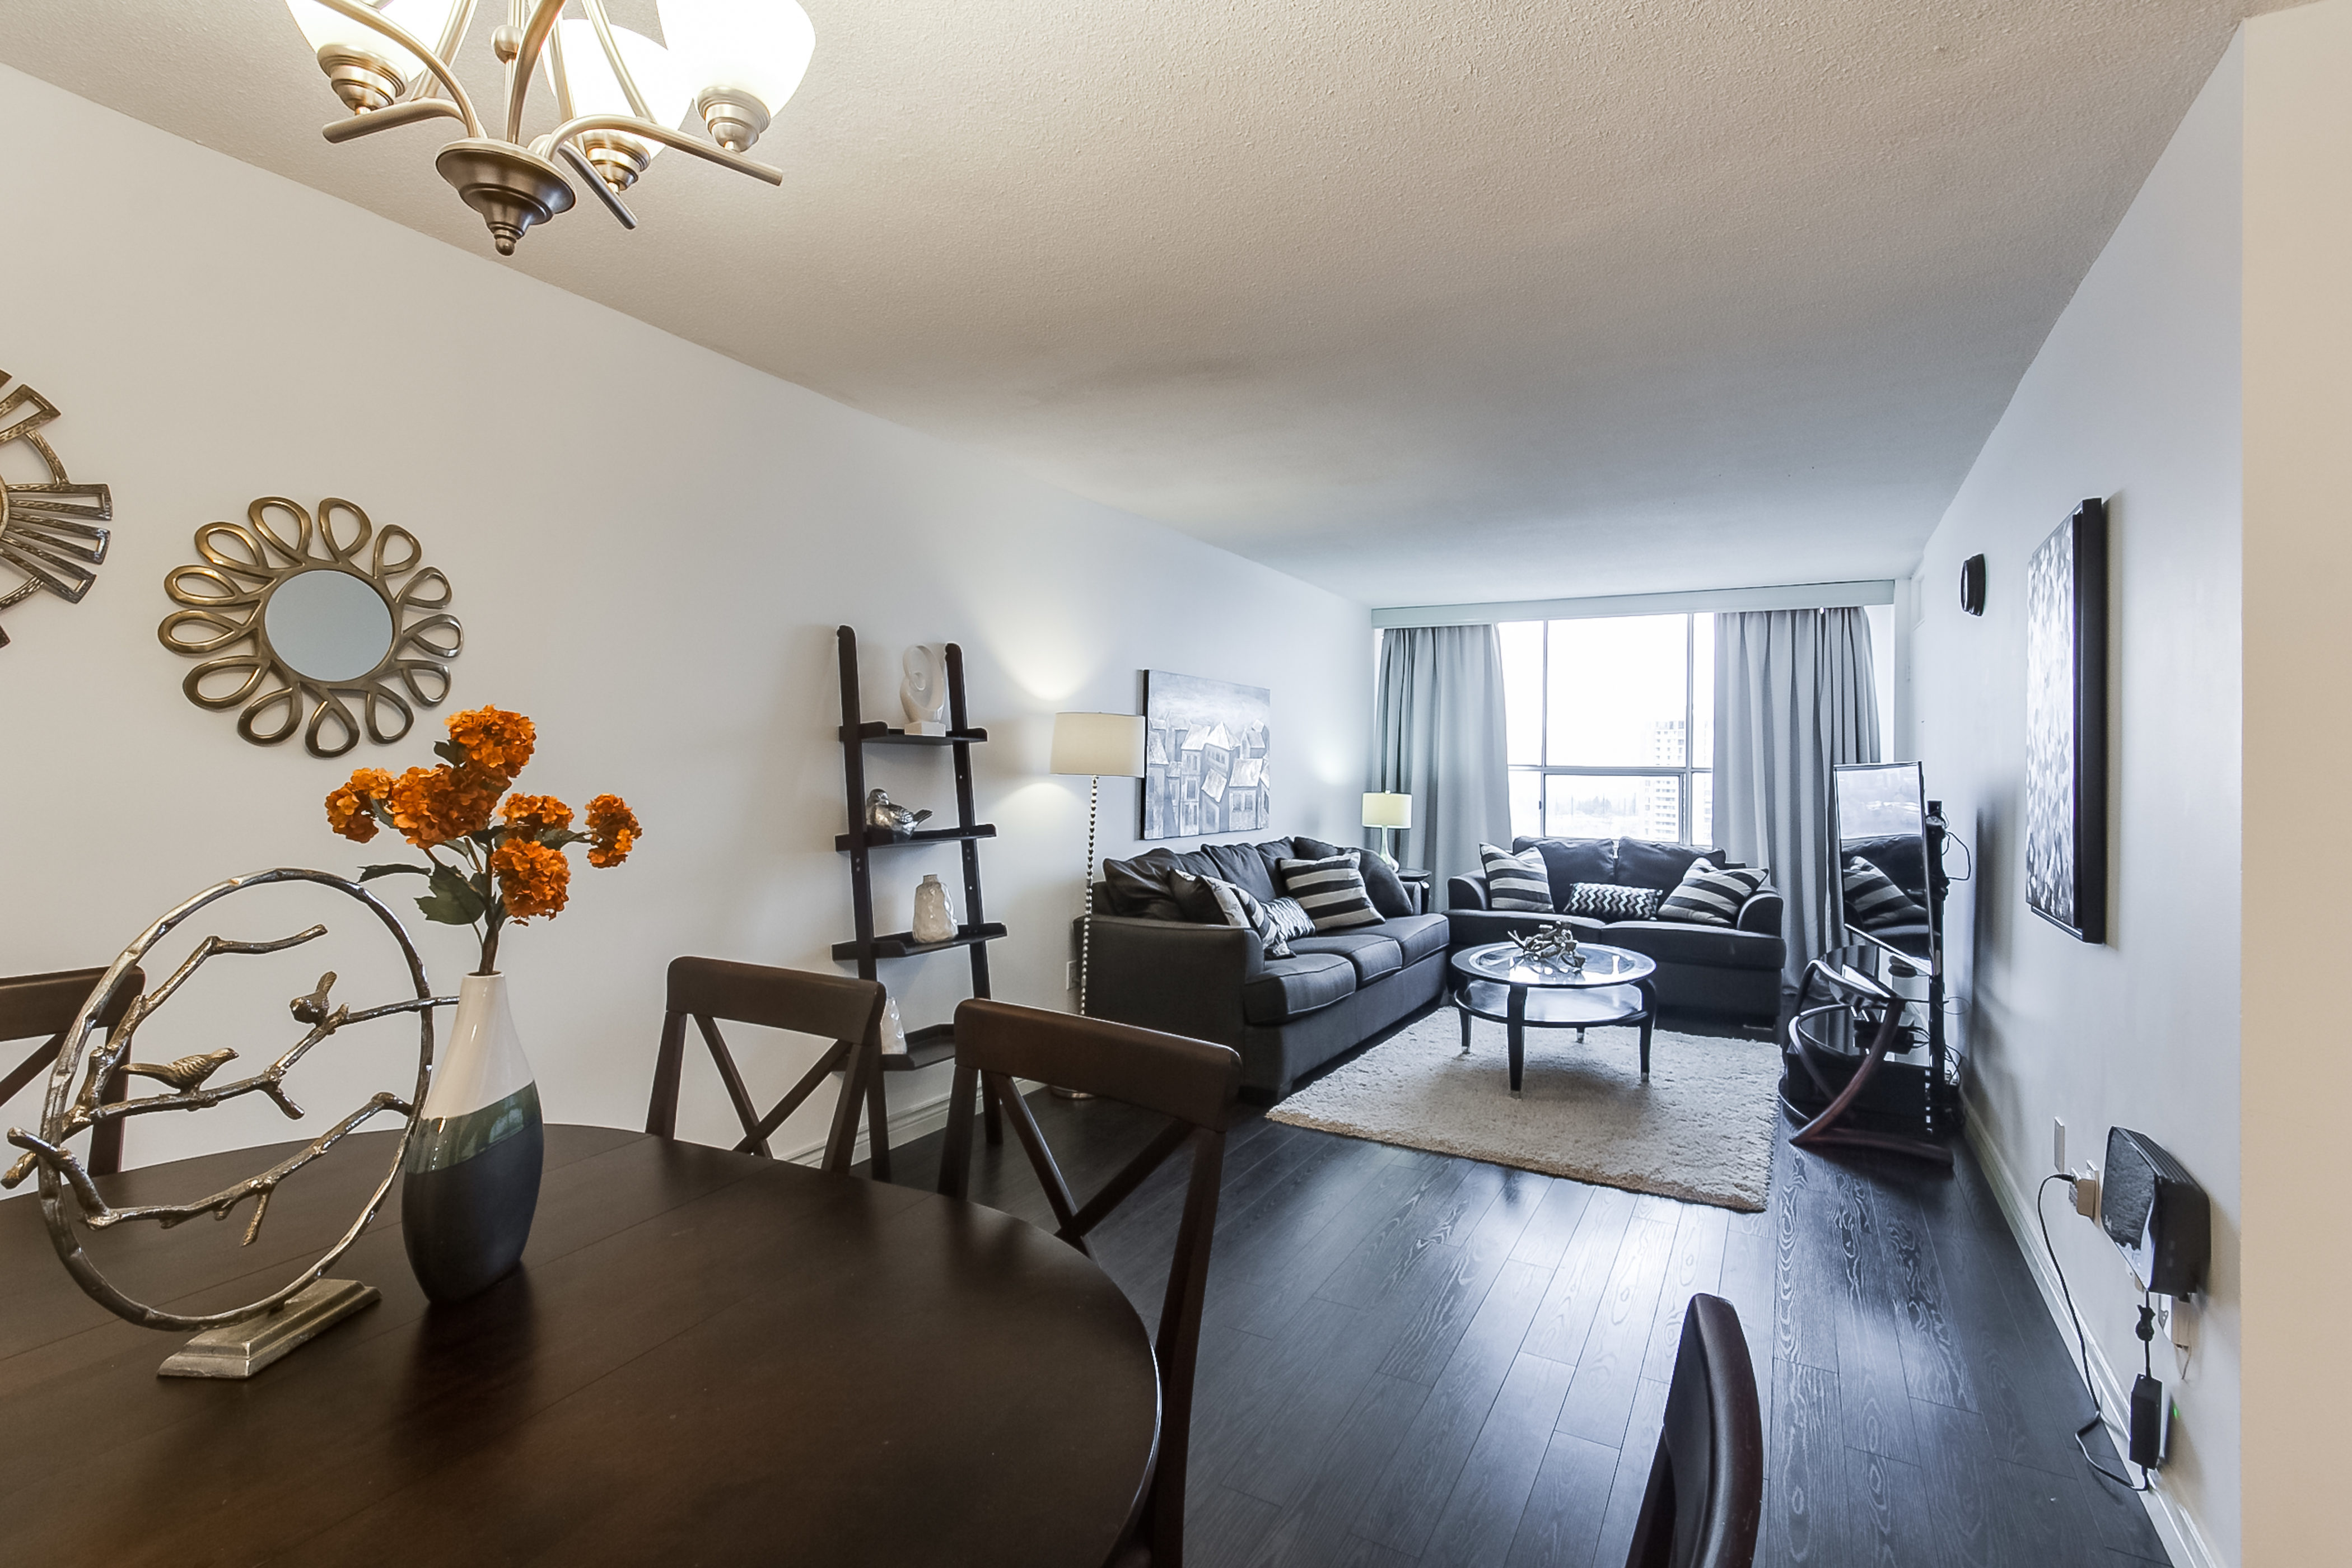 Just Listed! Affordable condo living in Etobicoke